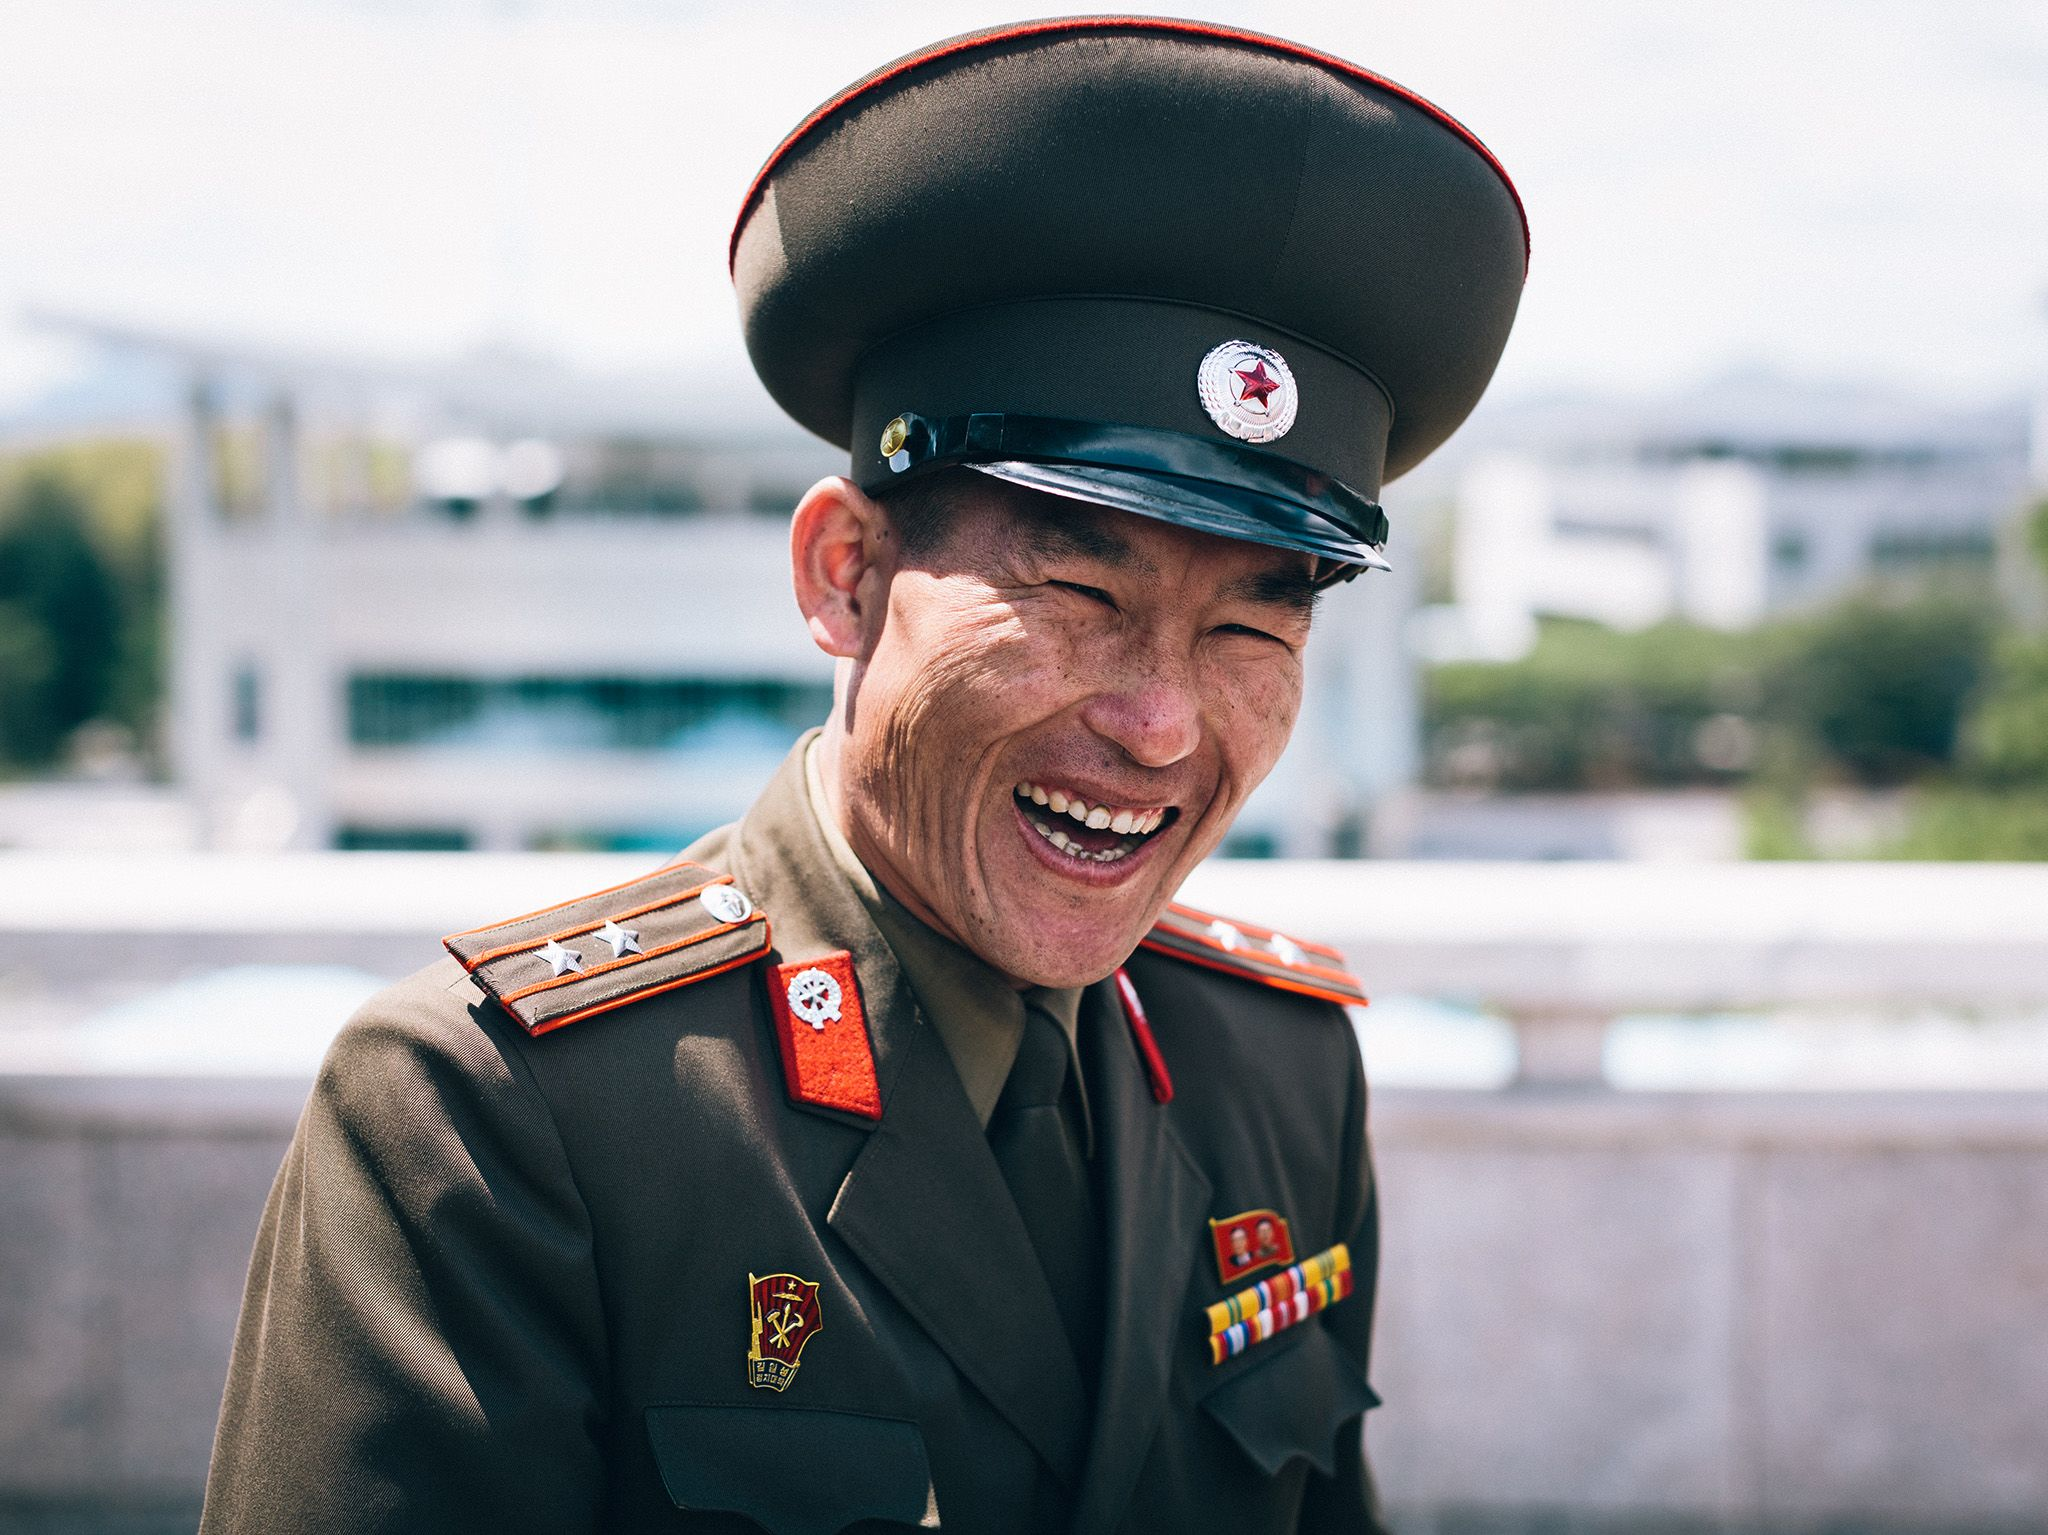 North Korea:  Military guard. This image is from North Korea: Michael Palin's Journey. [Photo of the day - December 2018]